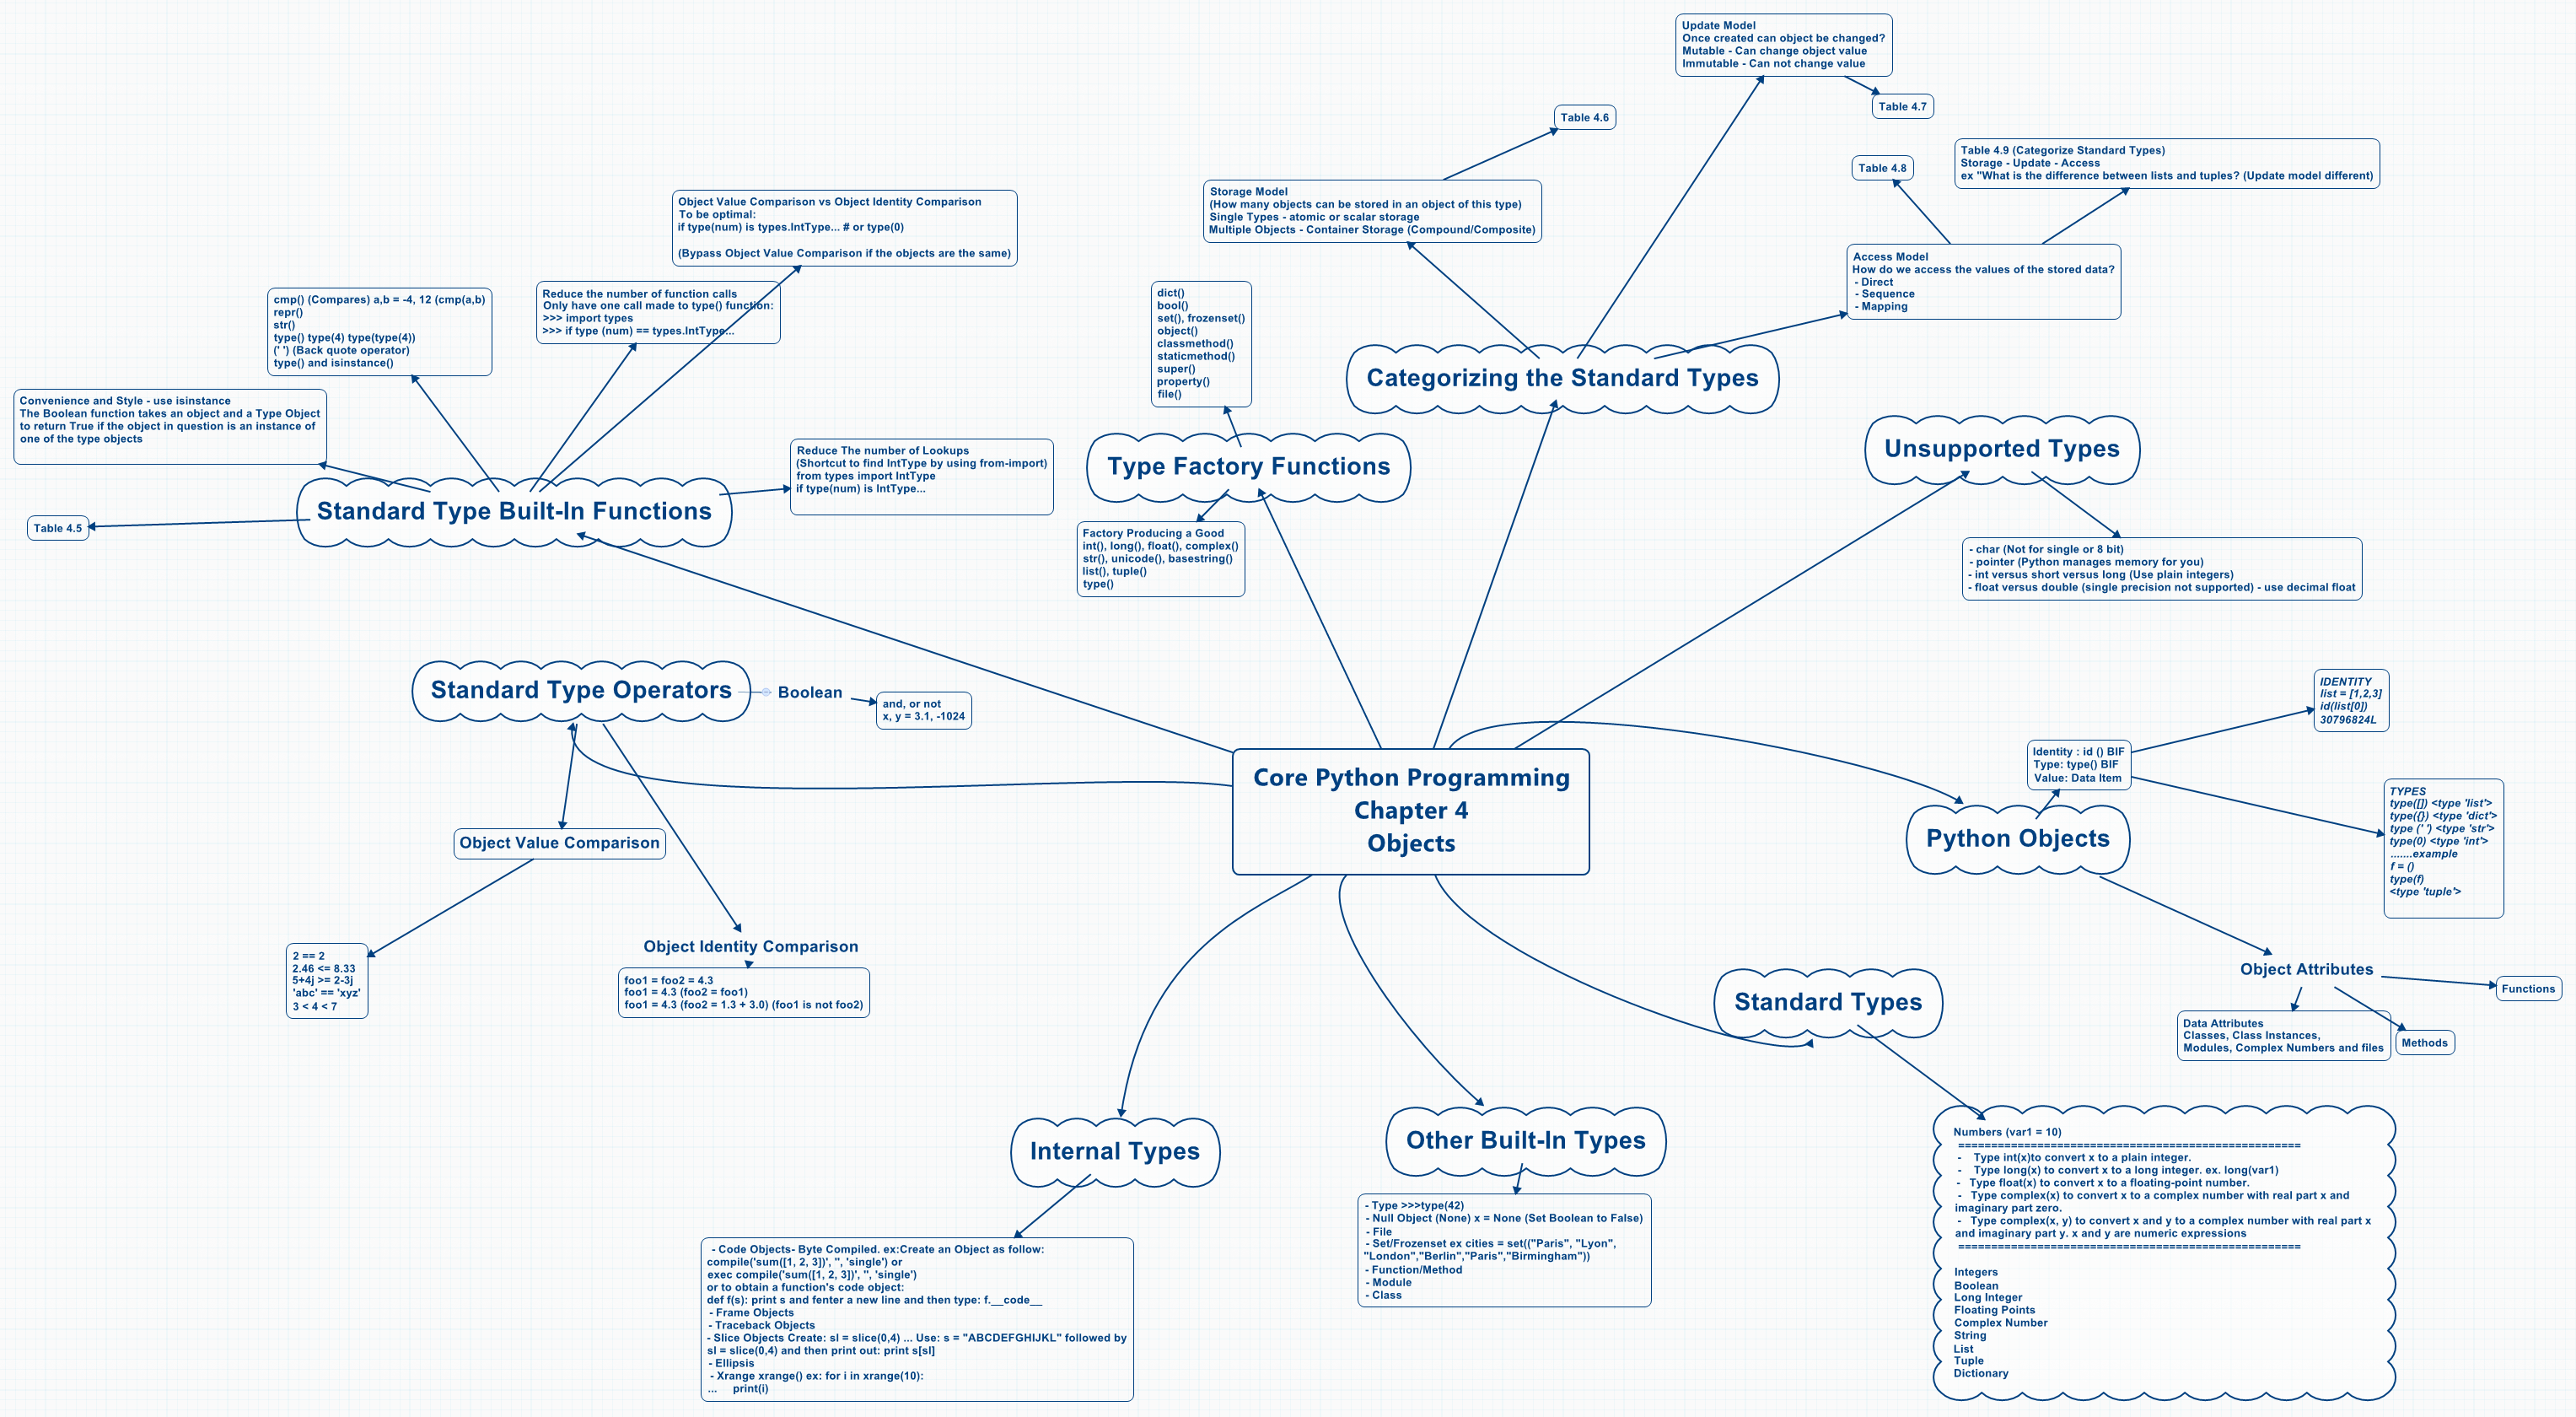 Core Python Programming Chapter 4 Objects - XMind - Mind Mapping